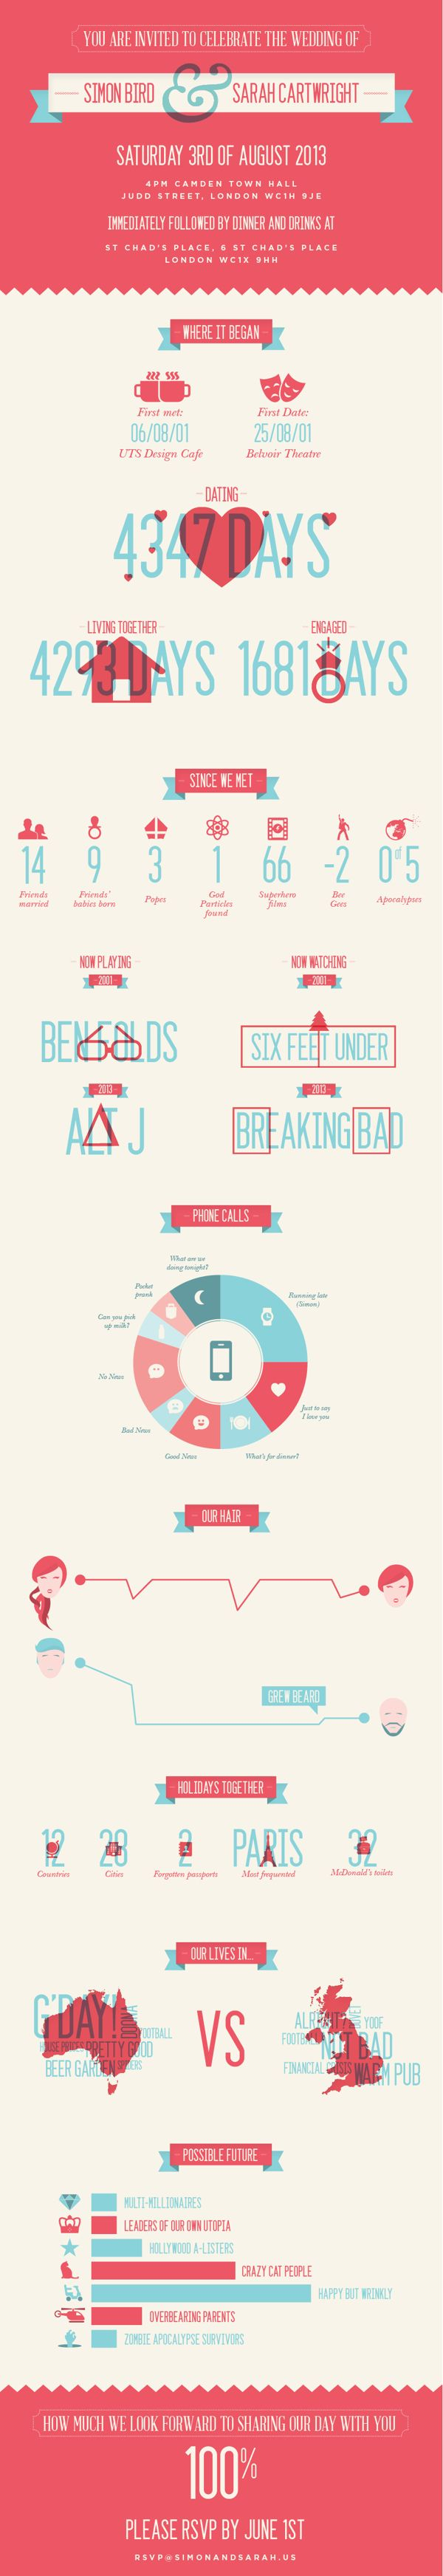 Infographic wedding invitation design by Jonathan Quintin. Maybe something like this for the reception...